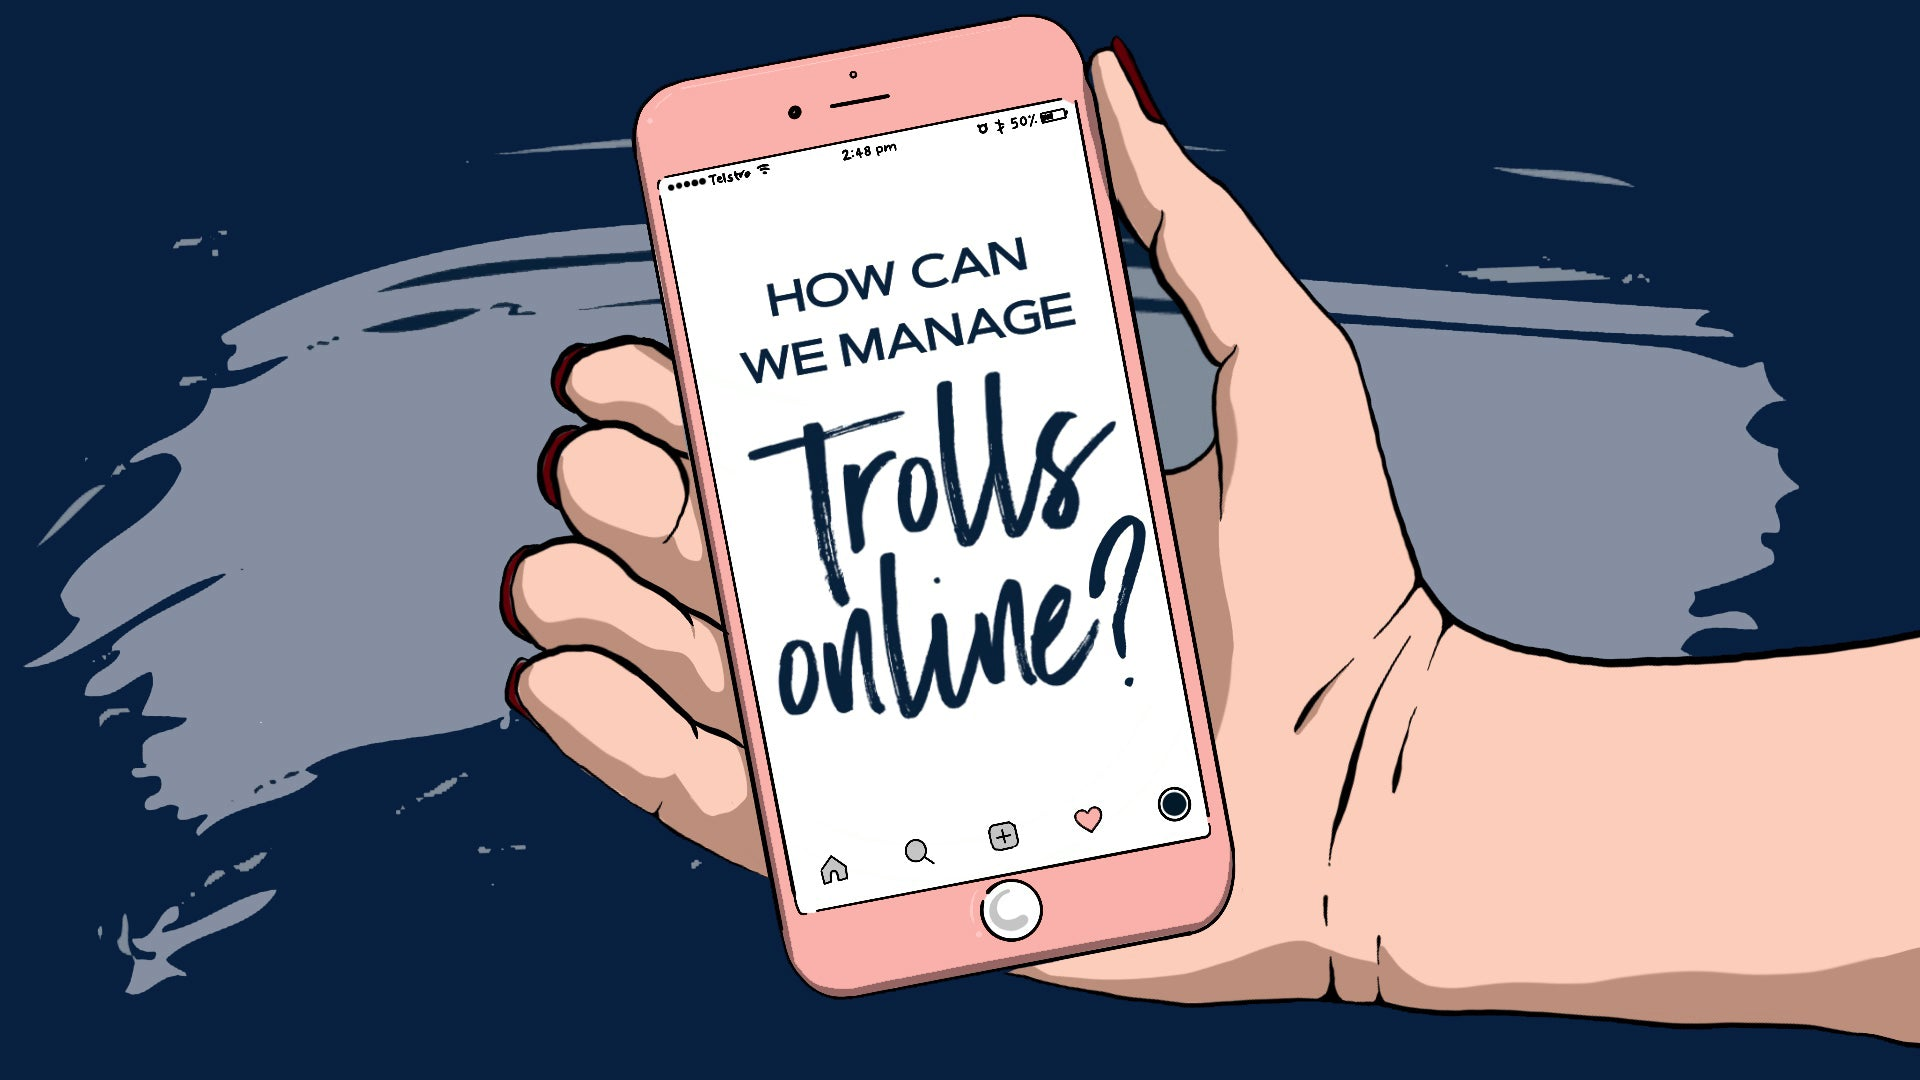 How to manage trolls online? (and make sure you aren't one) – a social guide for 2020